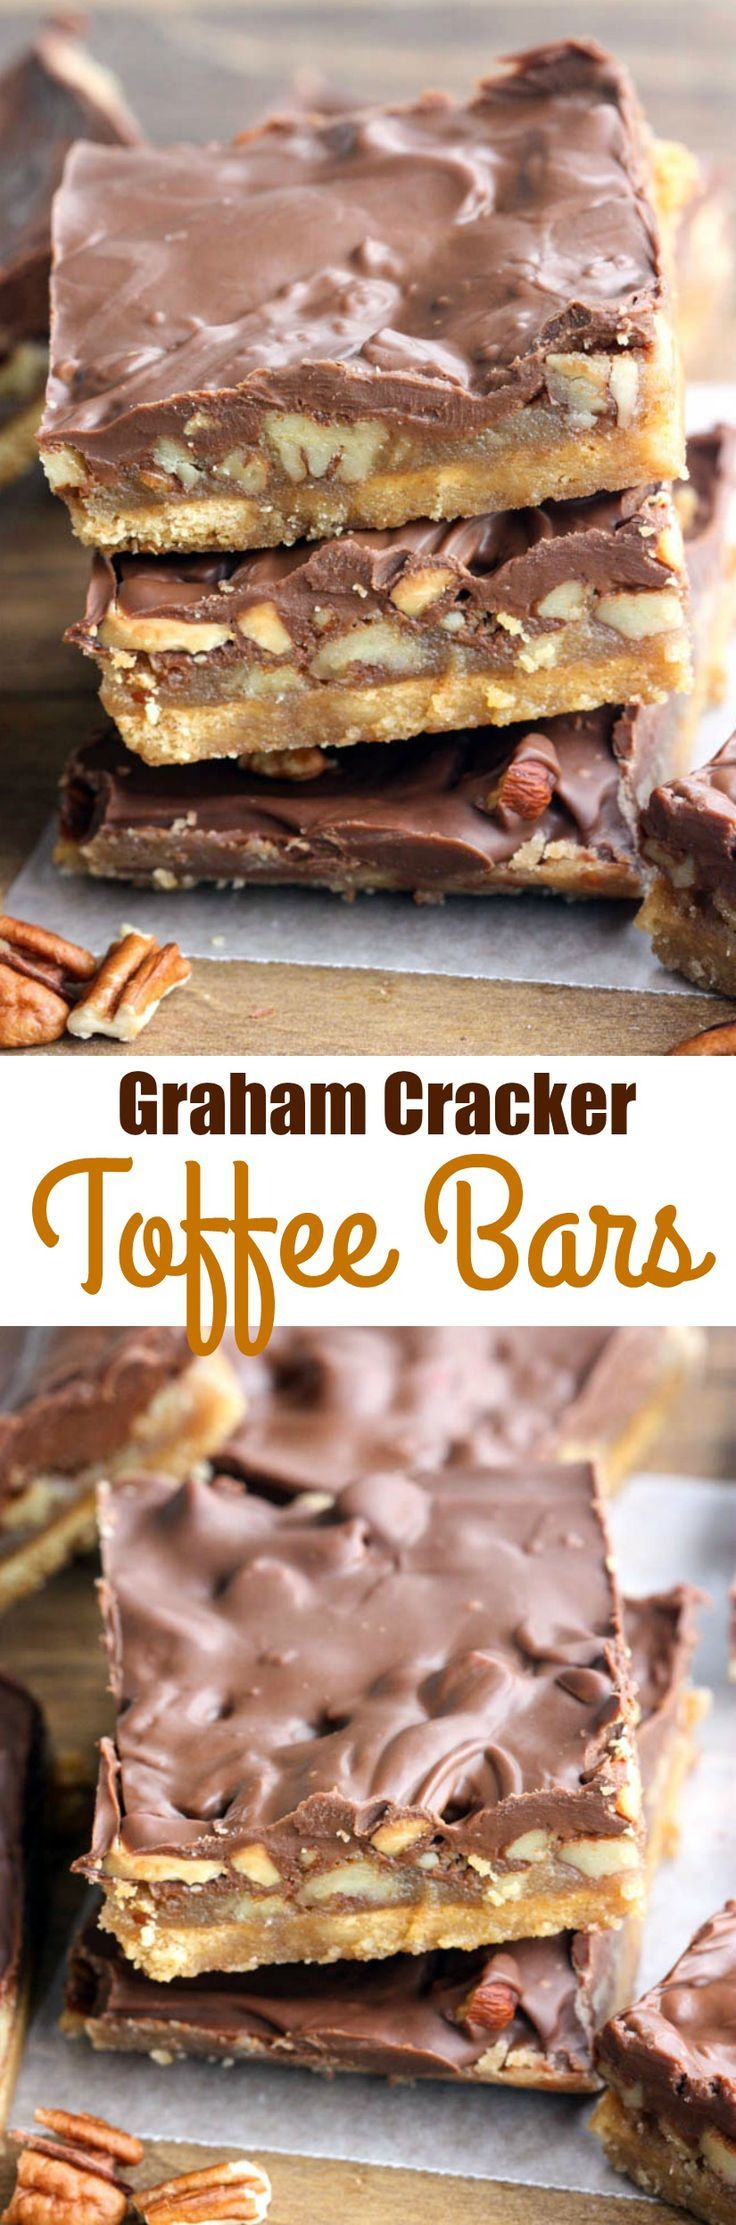 Graham Cracker Toffee Bars - only 5 ingredients to make the tastiest, easiest toffee bars! Perfect for an easy holiday treat.   Tastes Better From Scratch